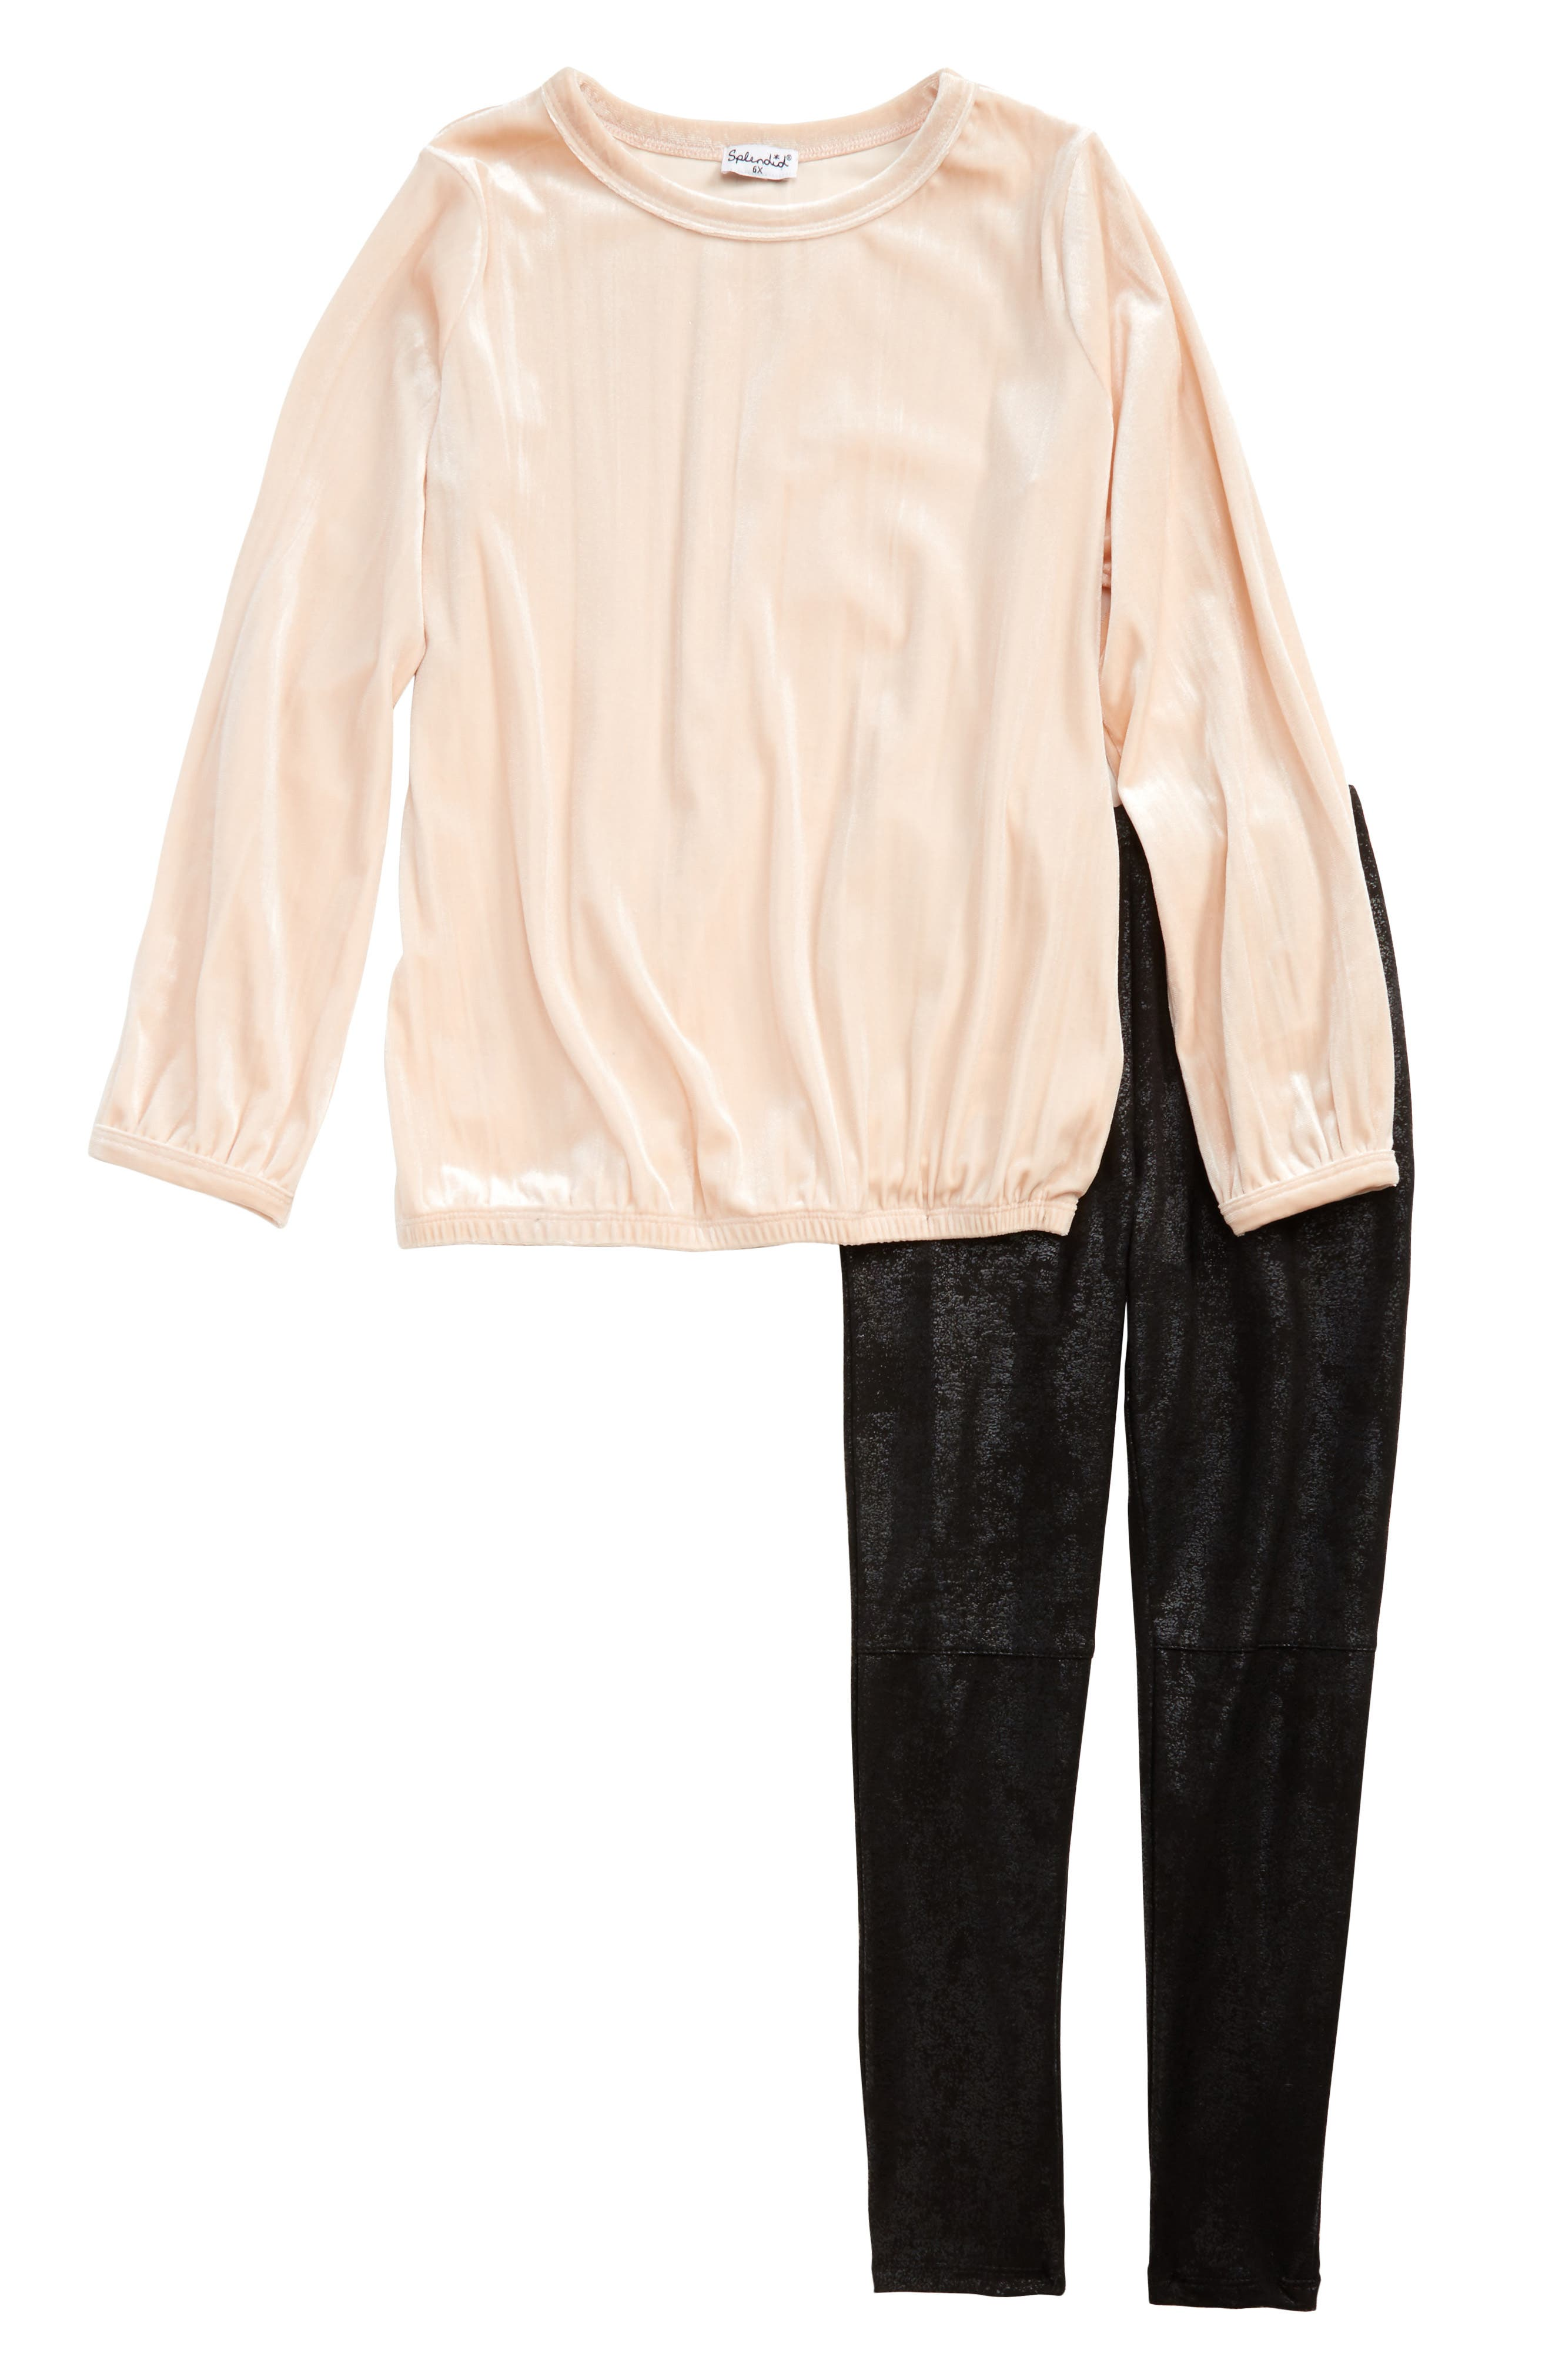 Velour Tunic & Faux Leather Leggings Set,                             Main thumbnail 1, color,                             680